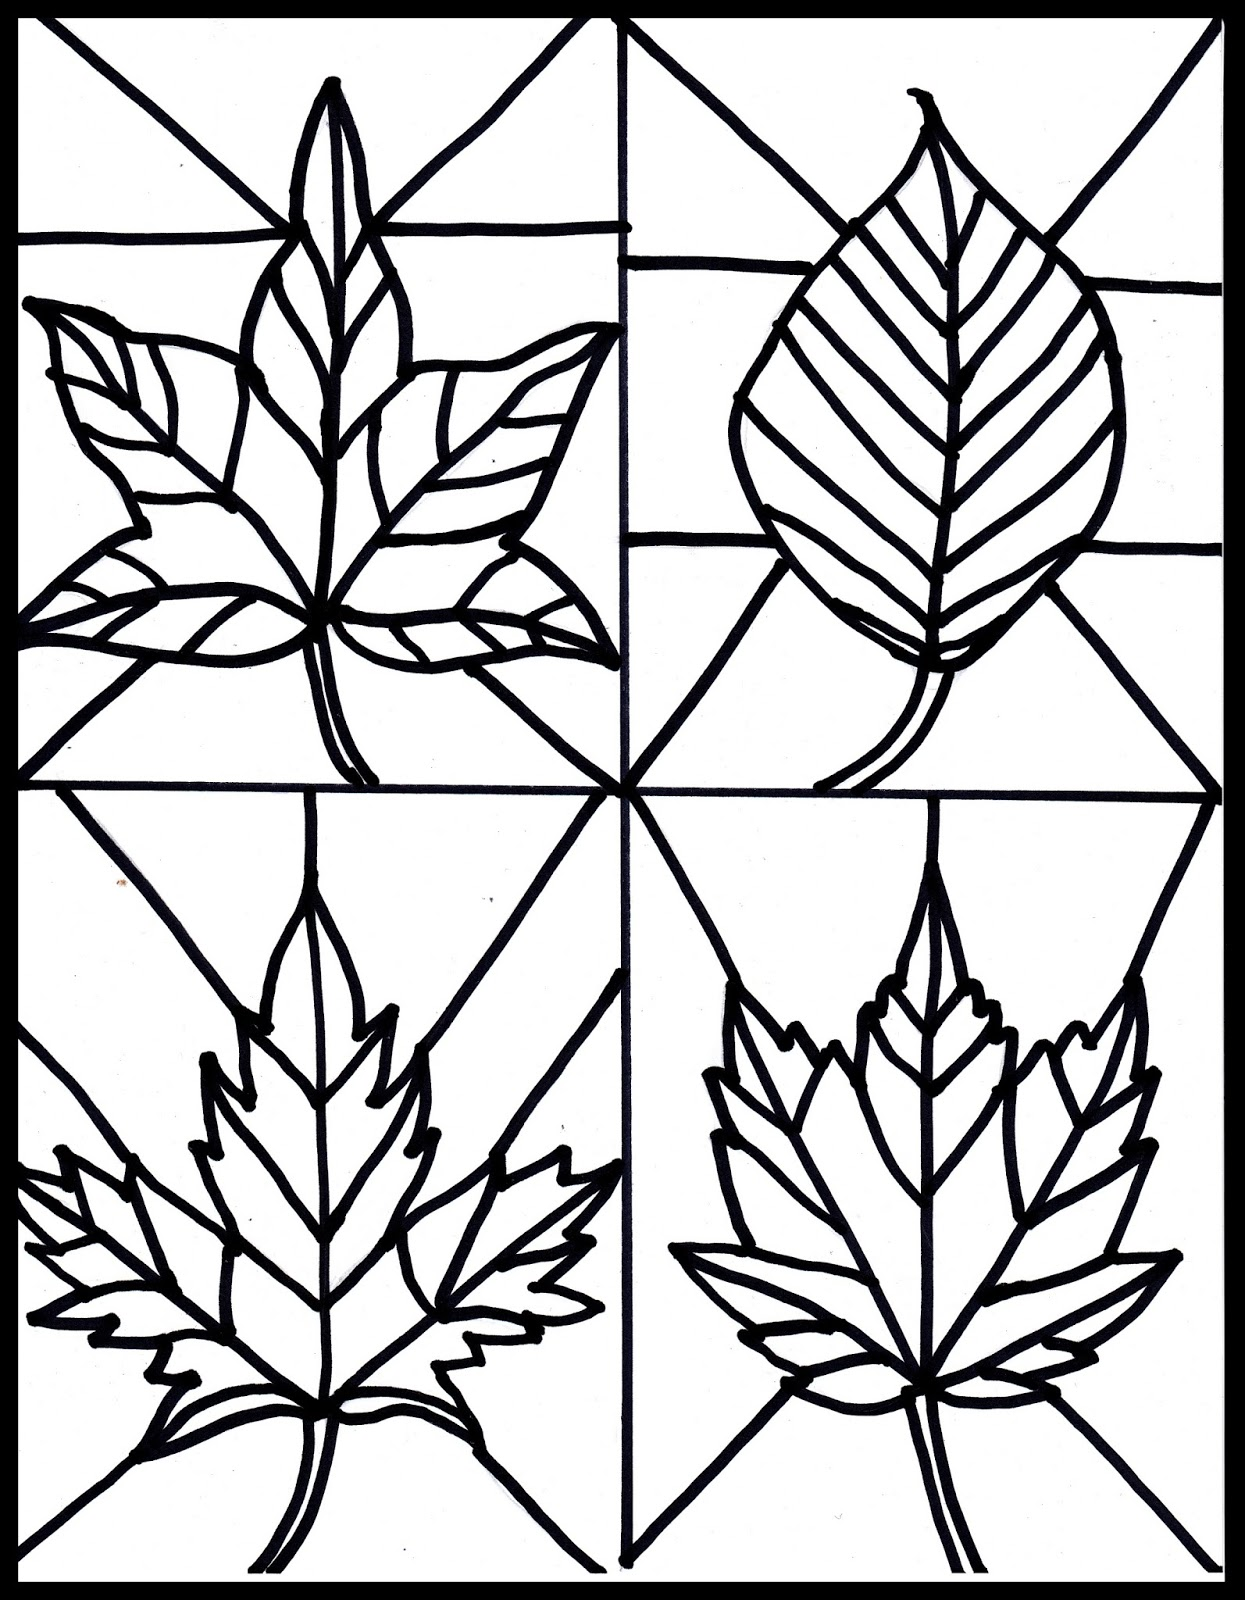 Make it easy crafts kids craft stained glass leaves free printable kids craft stained glass leaves free printable jeuxipadfo Choice Image